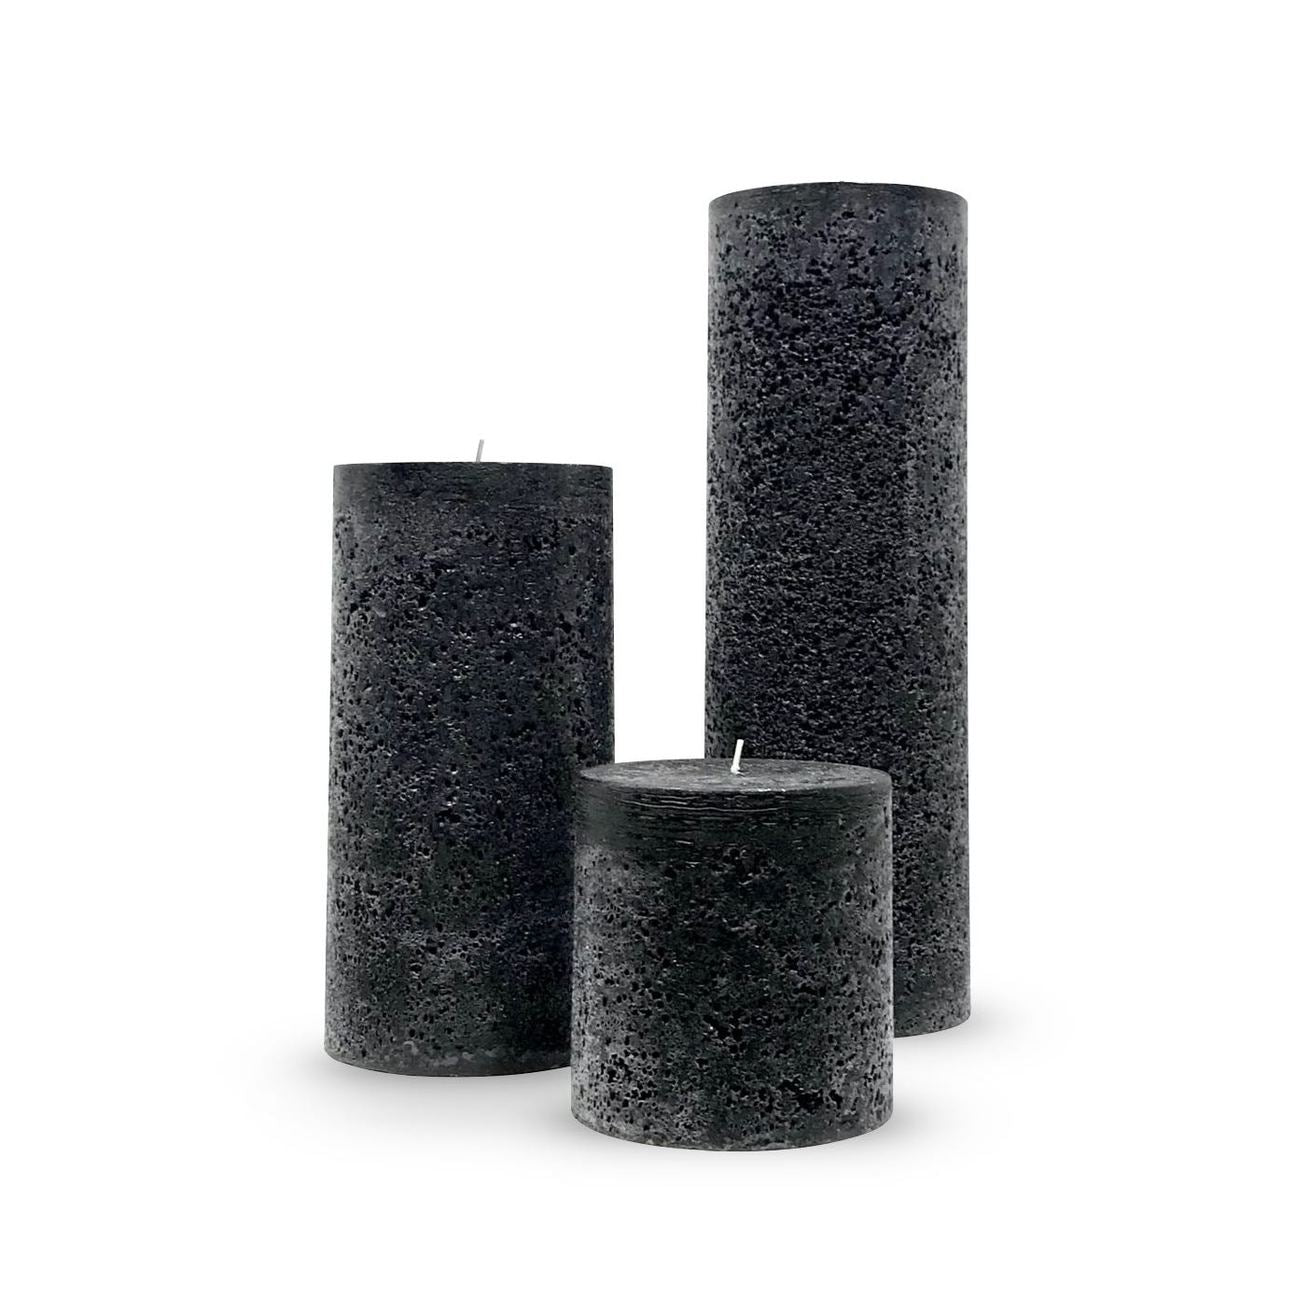 Textured Black Pillars